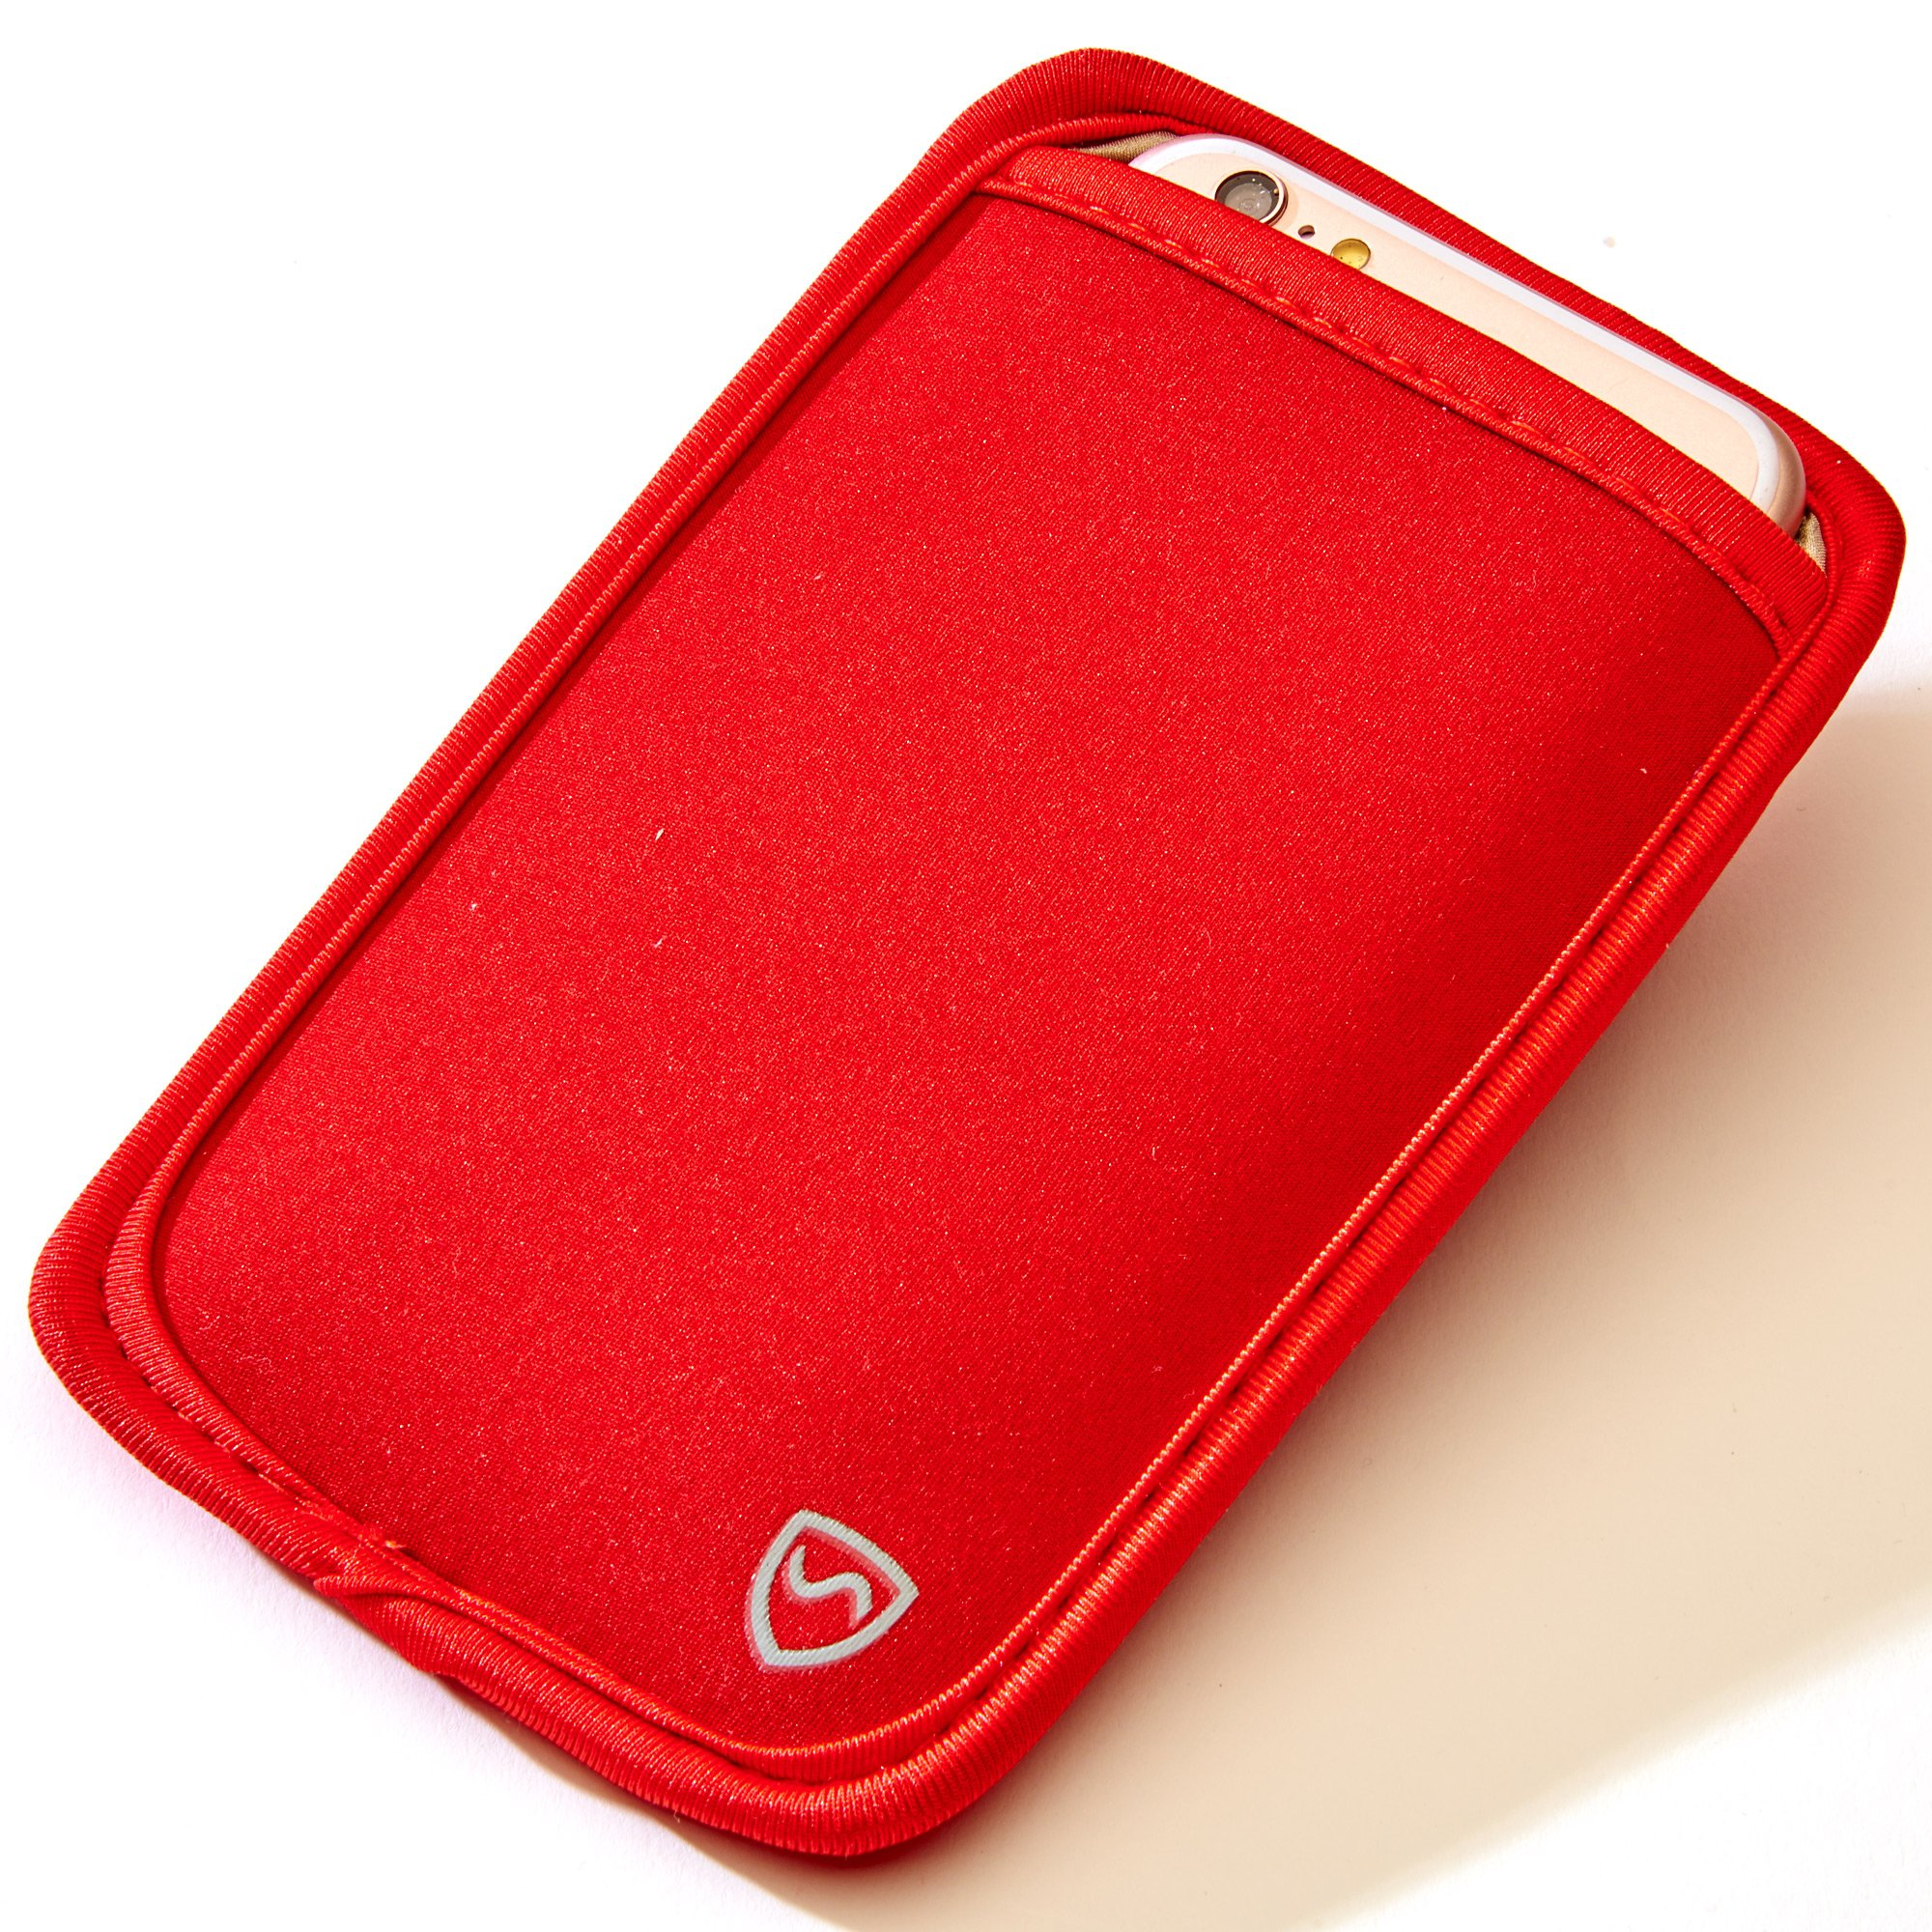 SYB Phone Pouch, Cell Phone EMF Protection Holster Sleeve for Phones up to 3.25'' Wide with Belt Hoop (Red, Extra Large)